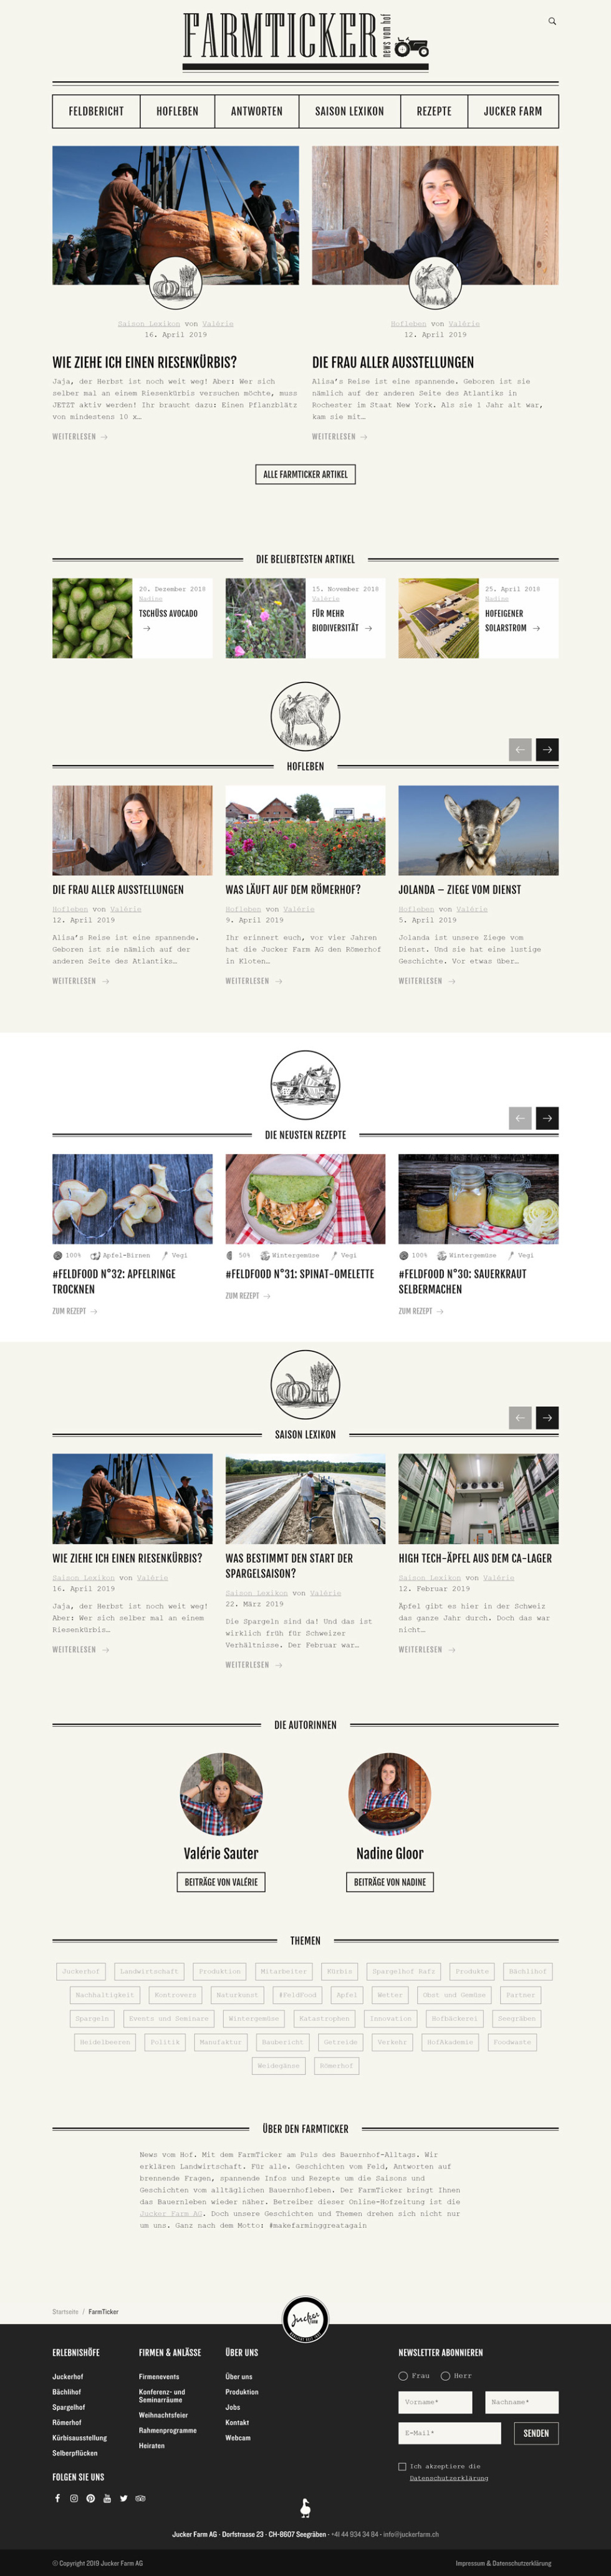 Image of Jucker Farm Website